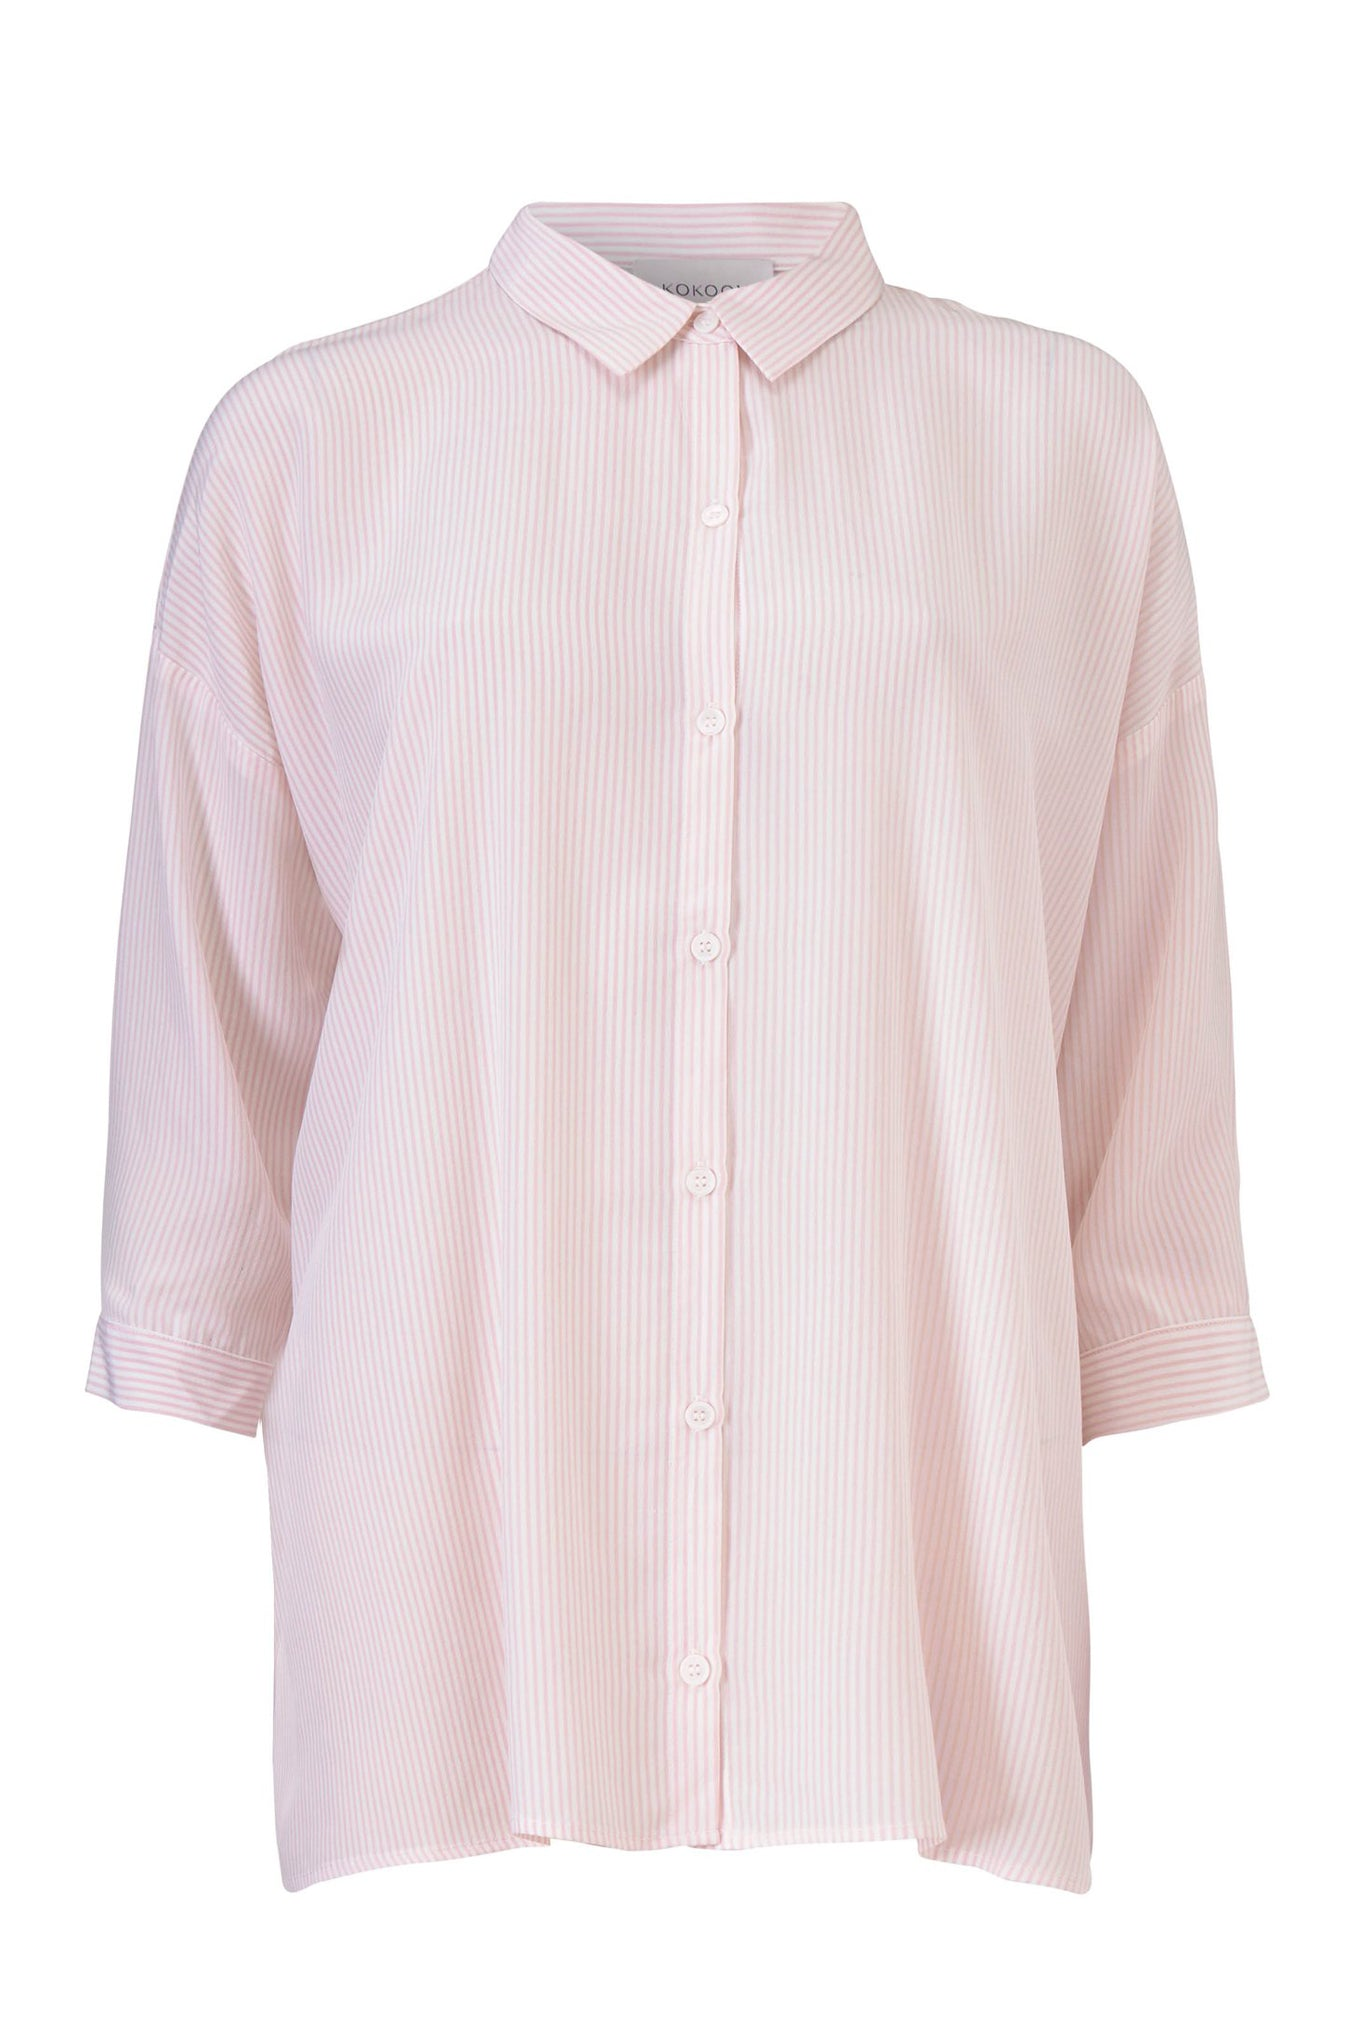 BIANCA STRAIGHT SHIRT - PINK STRIPE